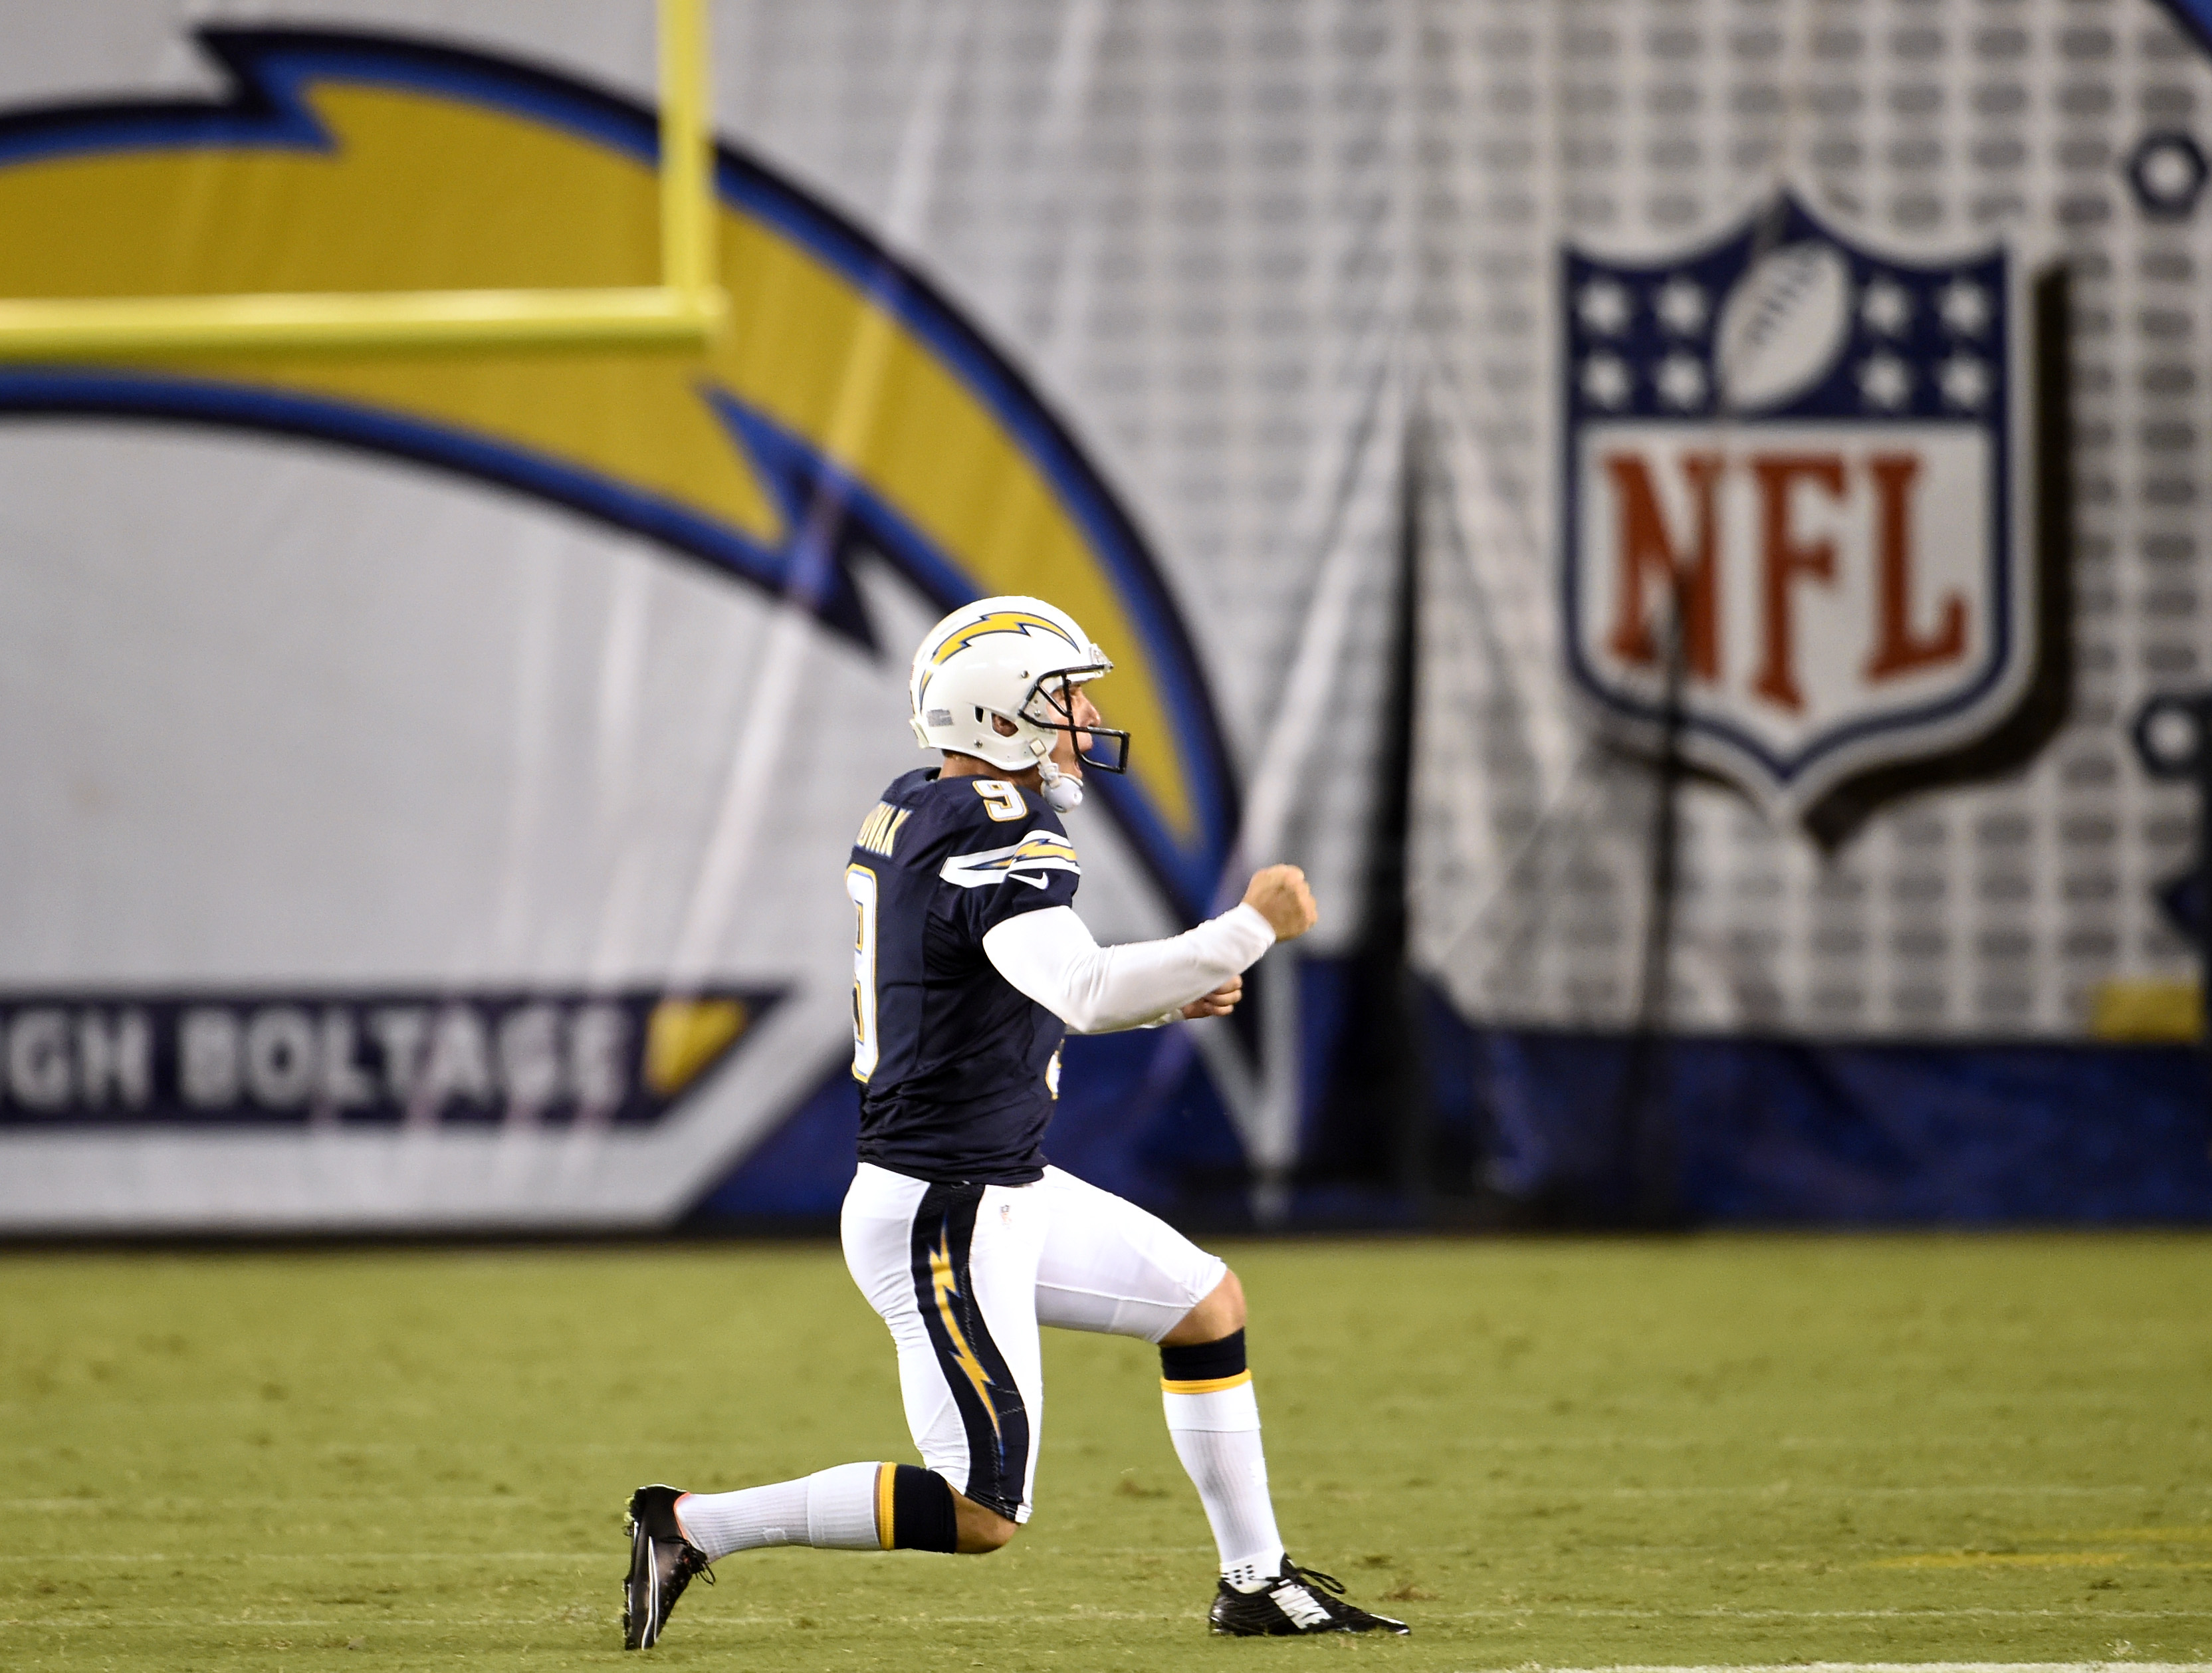 San Diego Chargers kicker Nick Novak celebrates after a field goal during the second half of a preseason NFL football game against the Seattle Seahawks, Saturday, Aug. 29, 2015, in San Diego. (AP Photo/Denis Poroy)